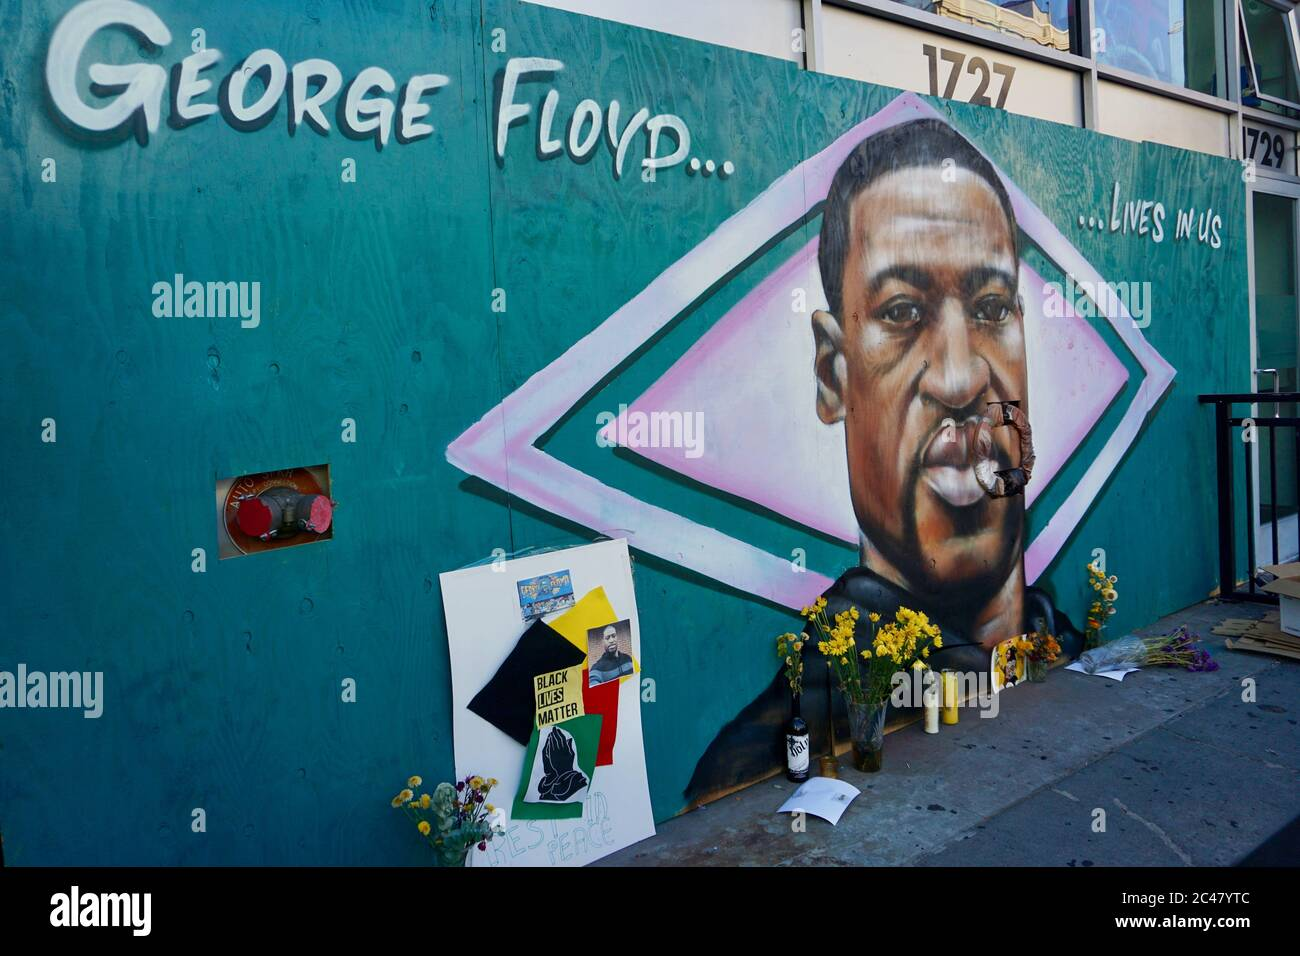 Black Lives Matter memorial and shrine to George Floyd. Mural by artist AmendTDK painted on boarded storefront. Downtown Oakland, California, USA. Stock Photo